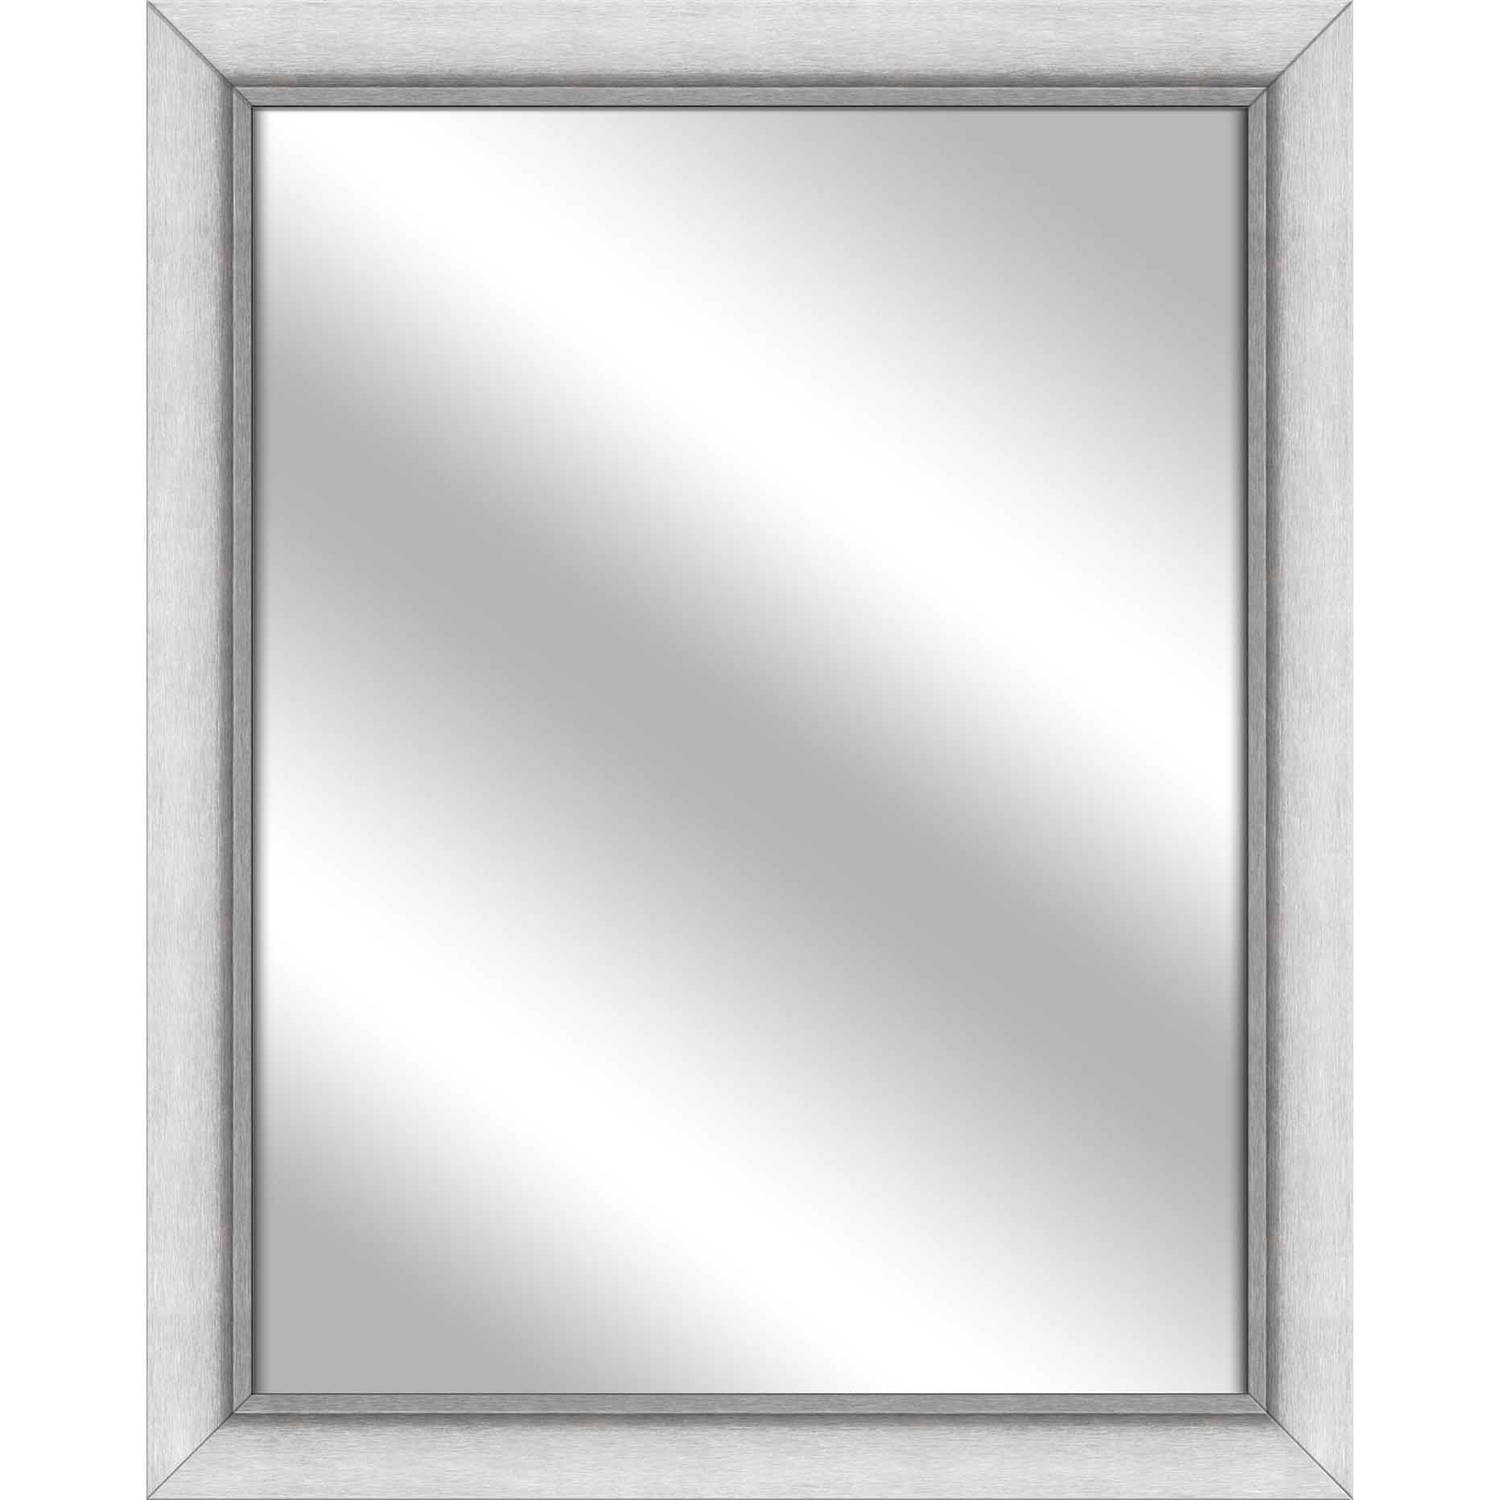 Vanity Mirror, Stainless Silver, 25.5x31.5 by PTM Images